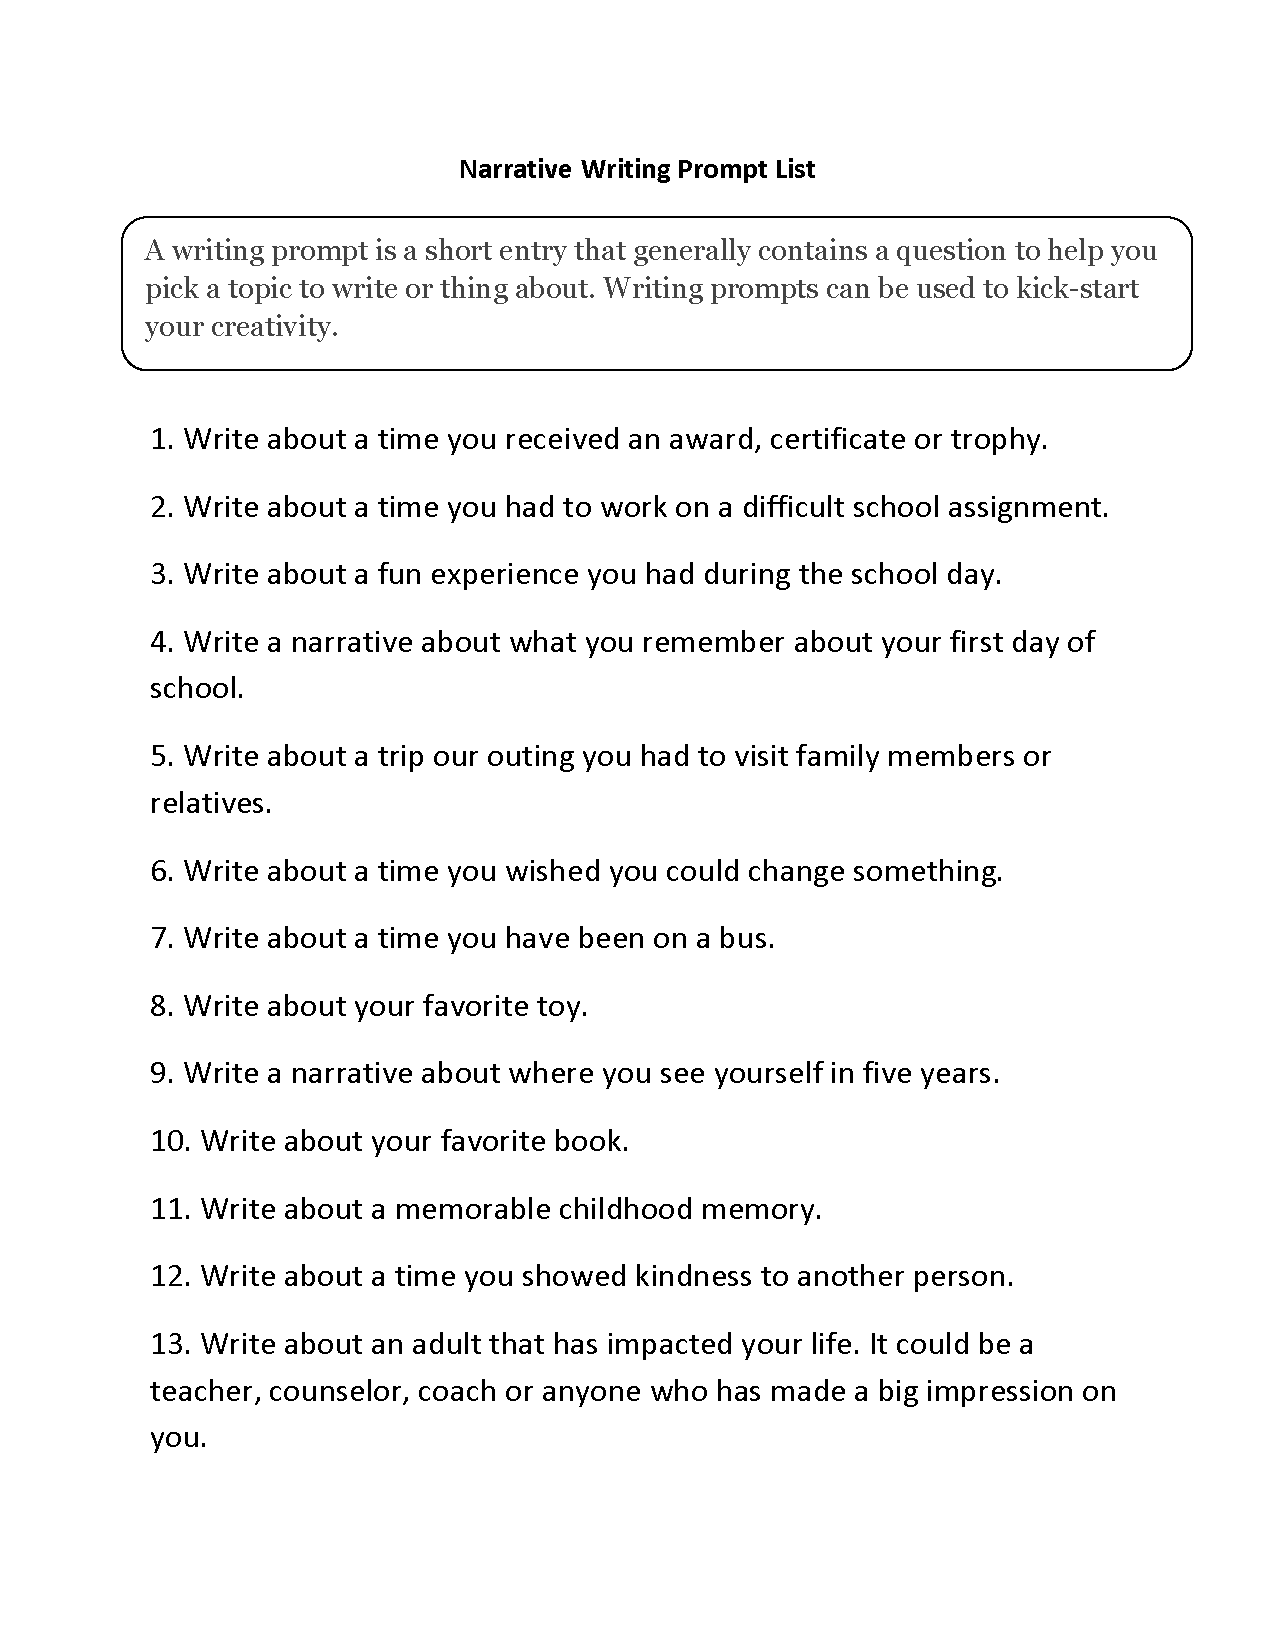 Narrative Writing Prompt List And Worksheet